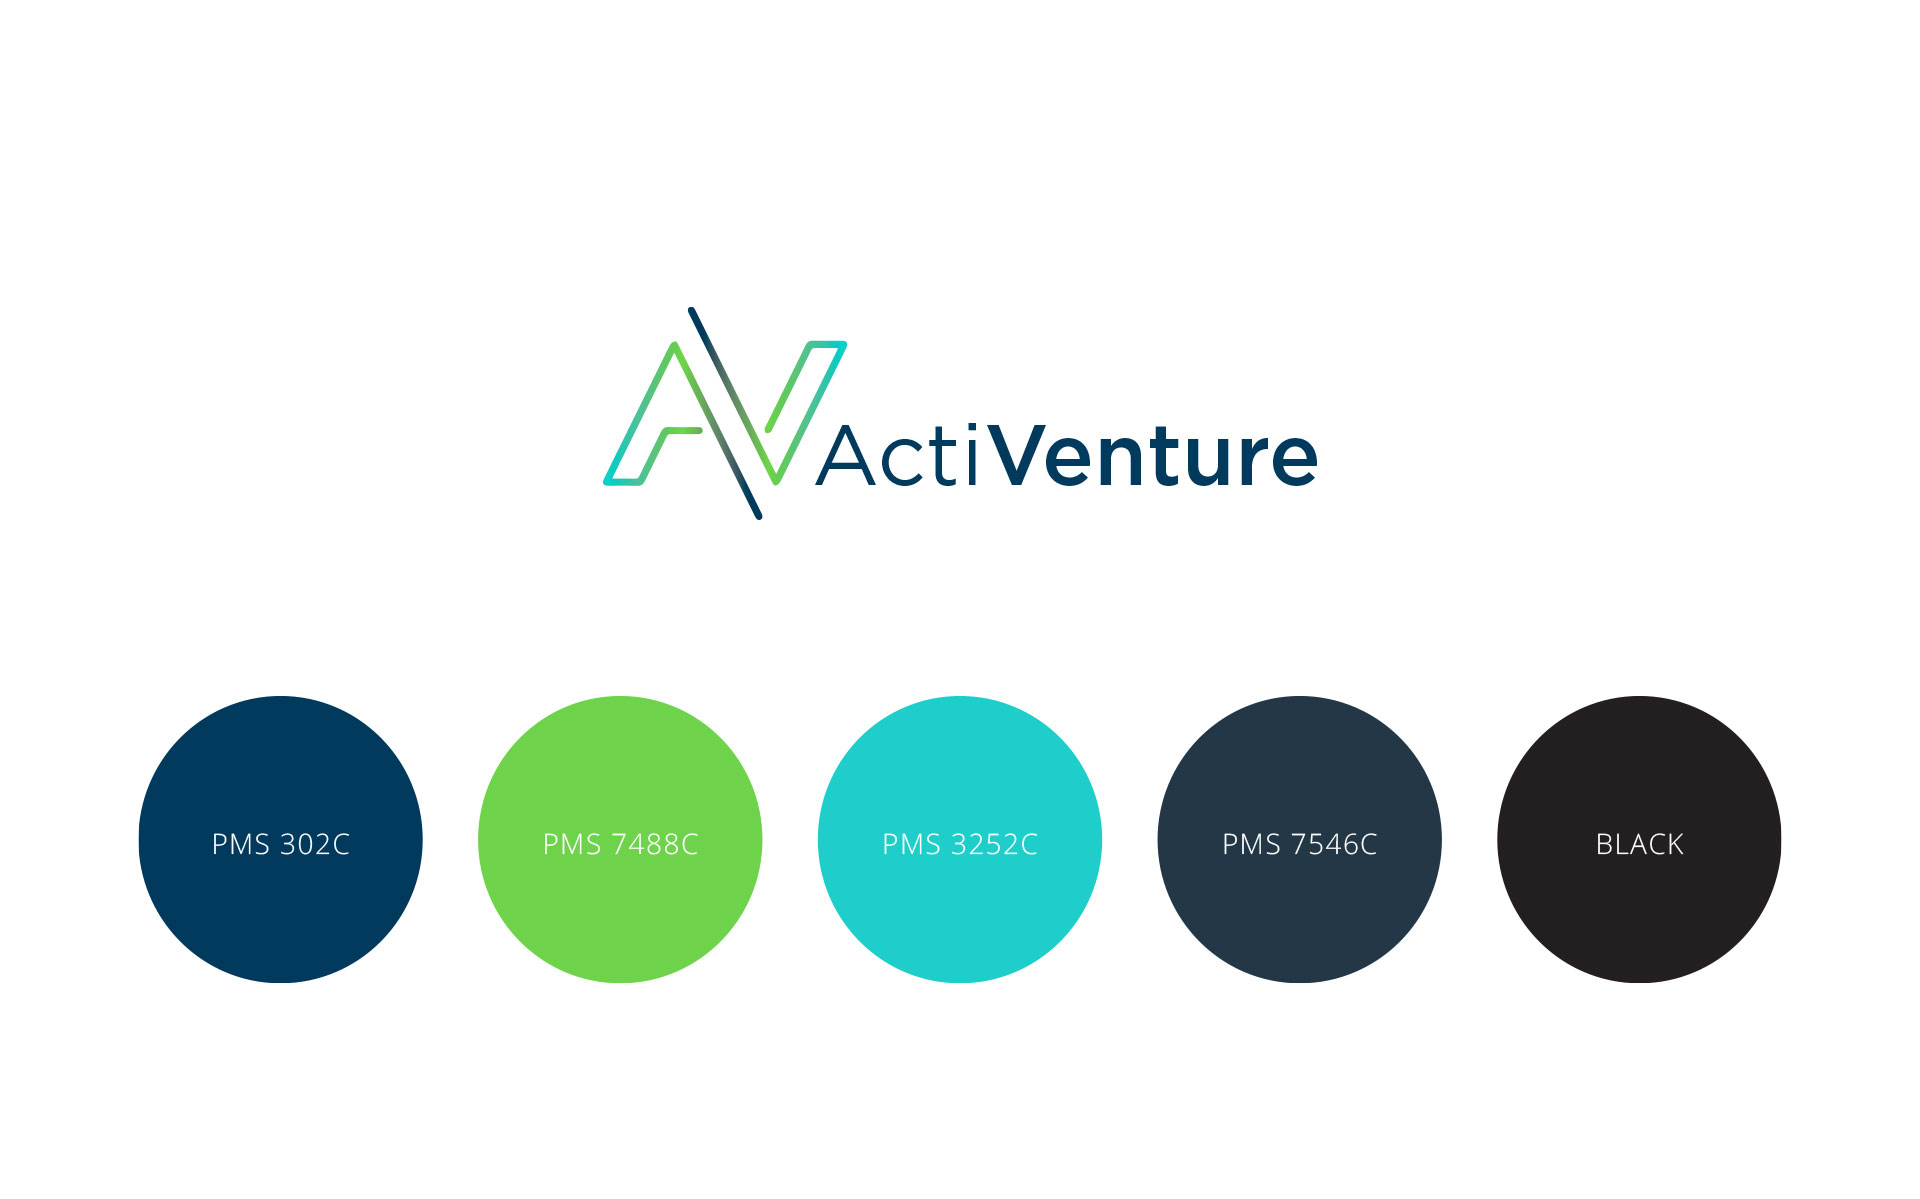 Activenture logo & branding designed by Amy at Yellow Sunday